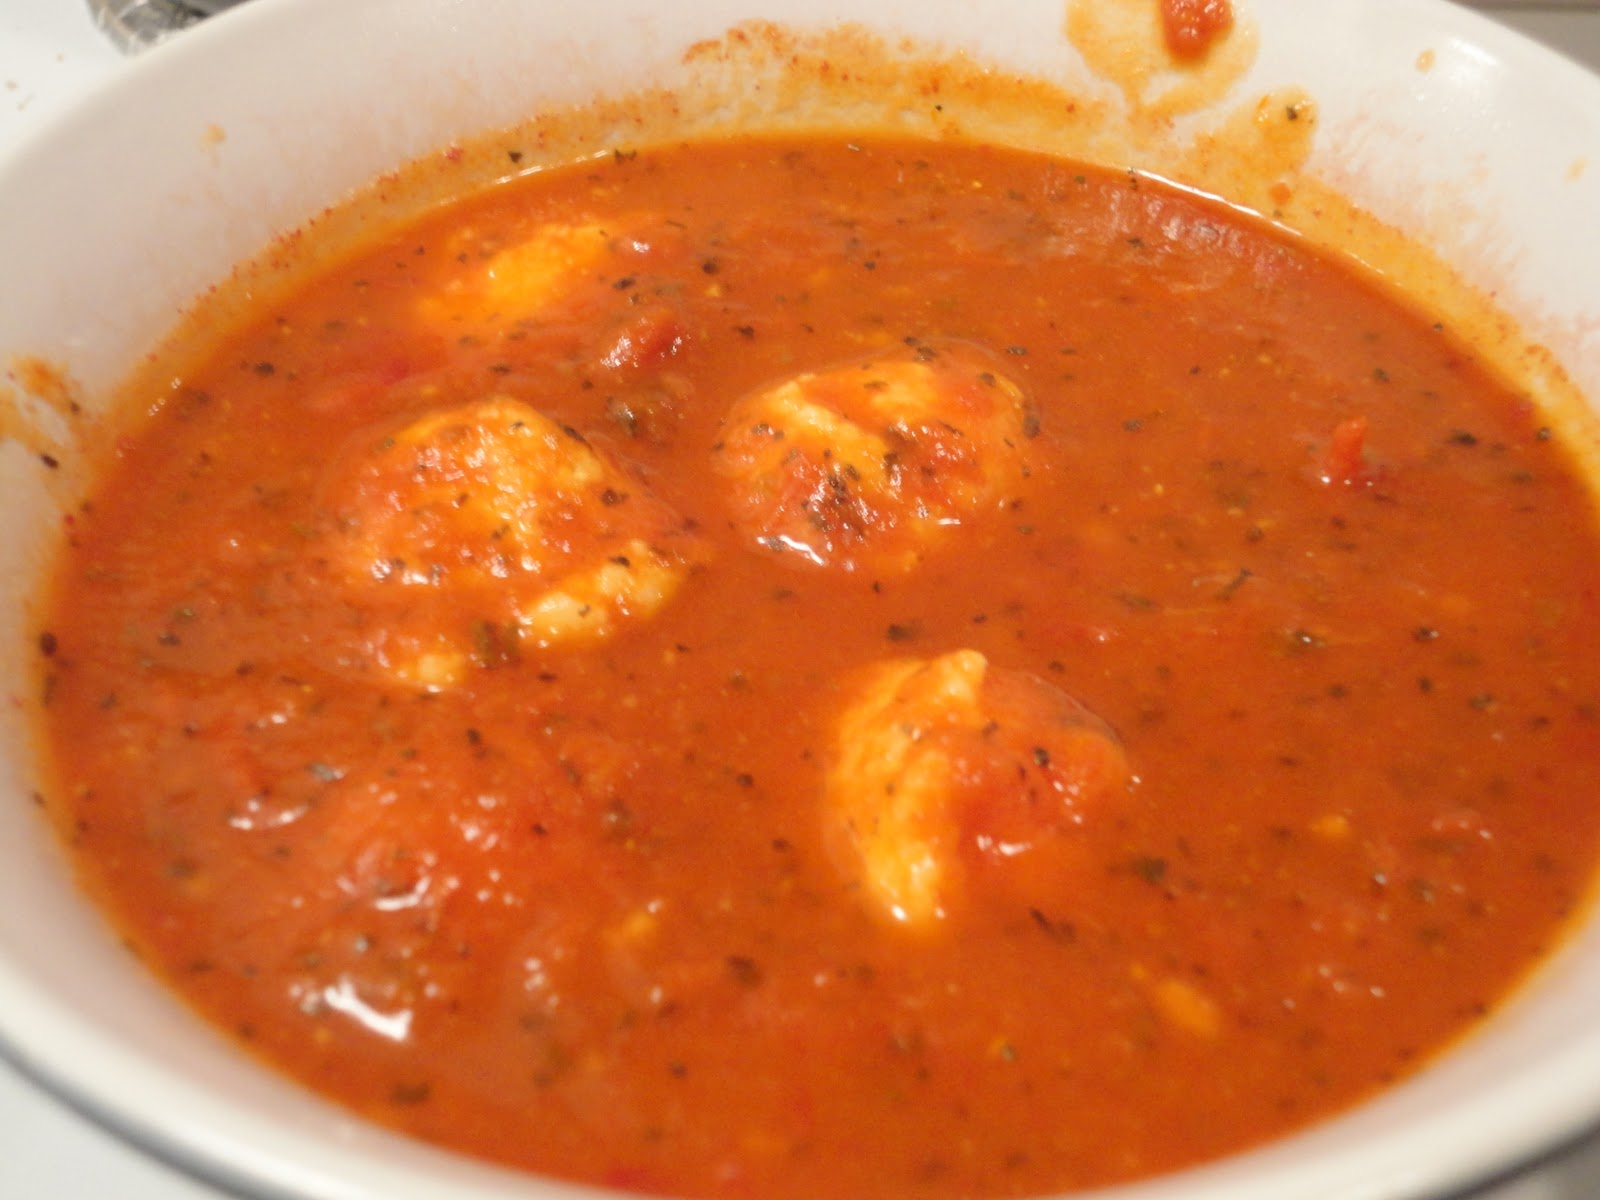 ... Journey in the Kitchen: Tomato-Basil Soup with Ricotta Dumplings